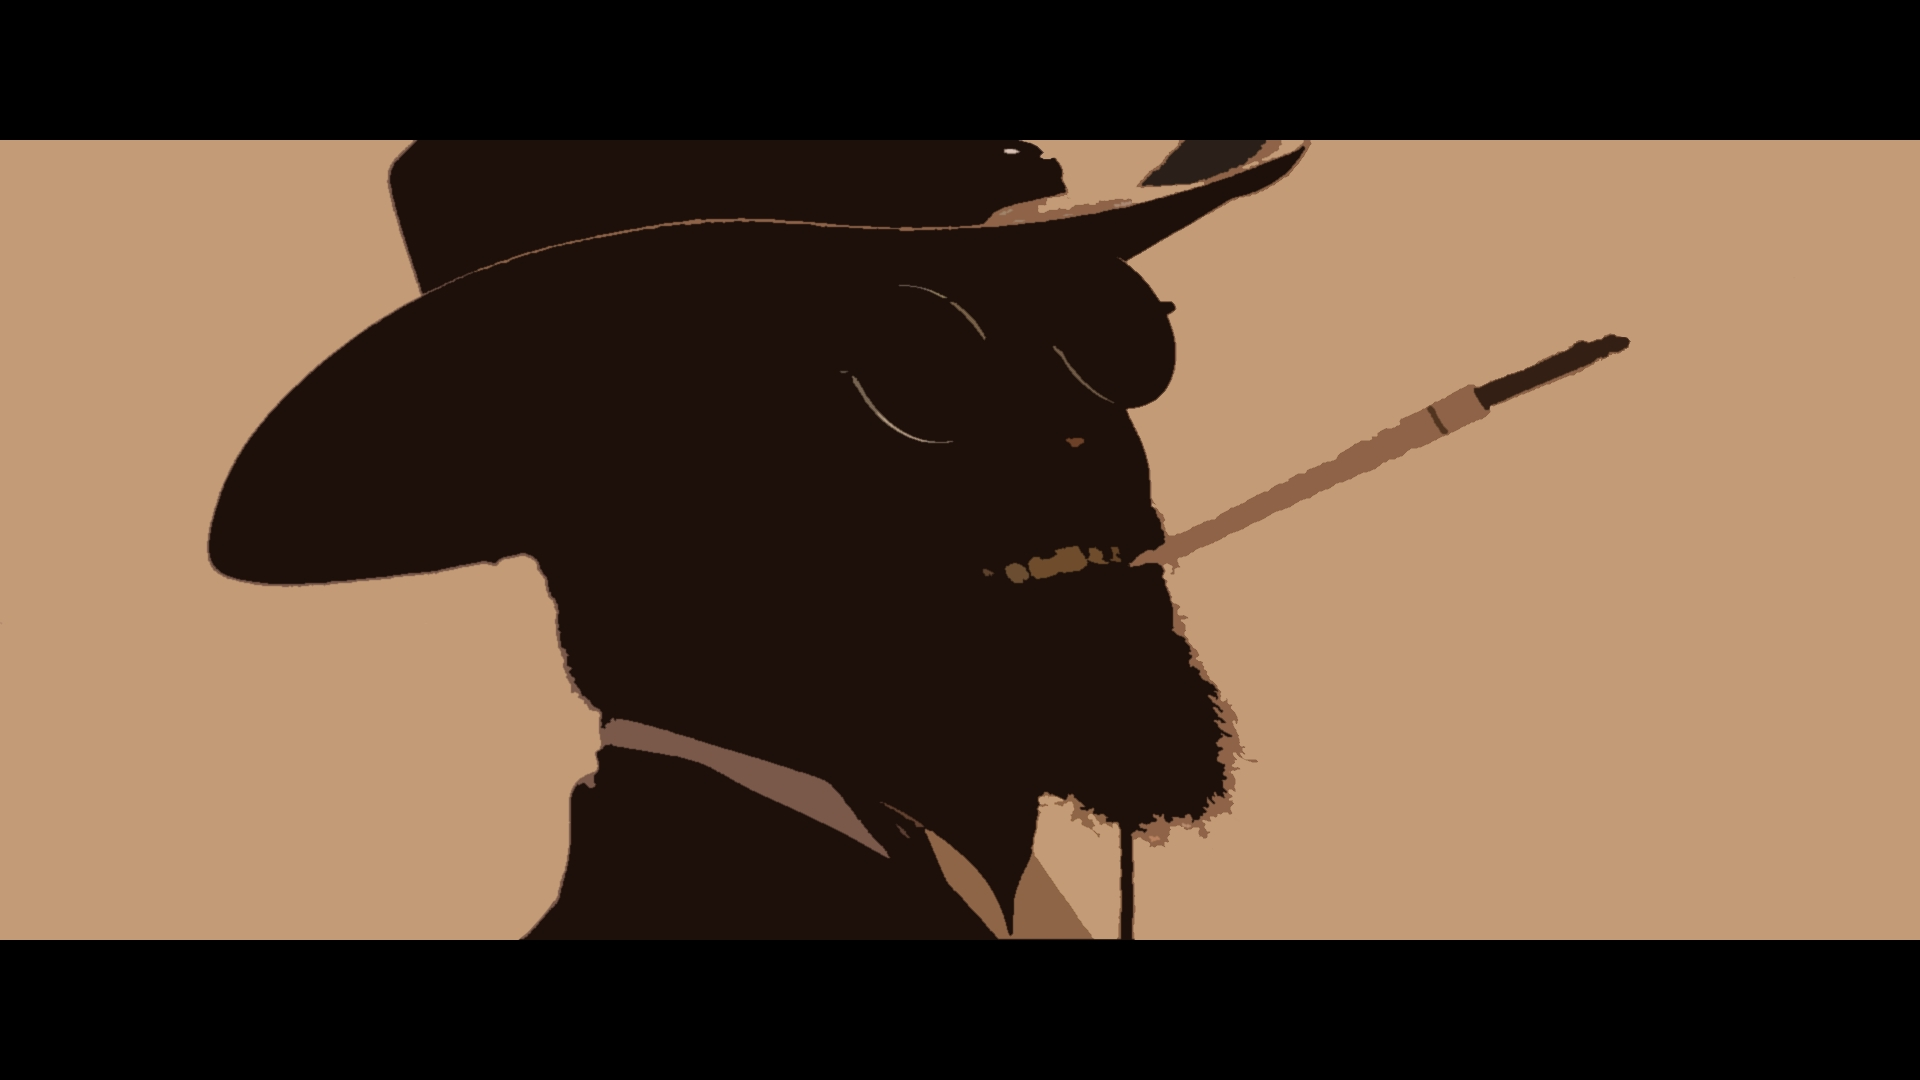 Django Unchained Computer Wallpapers, Desktop Backgrounds ...